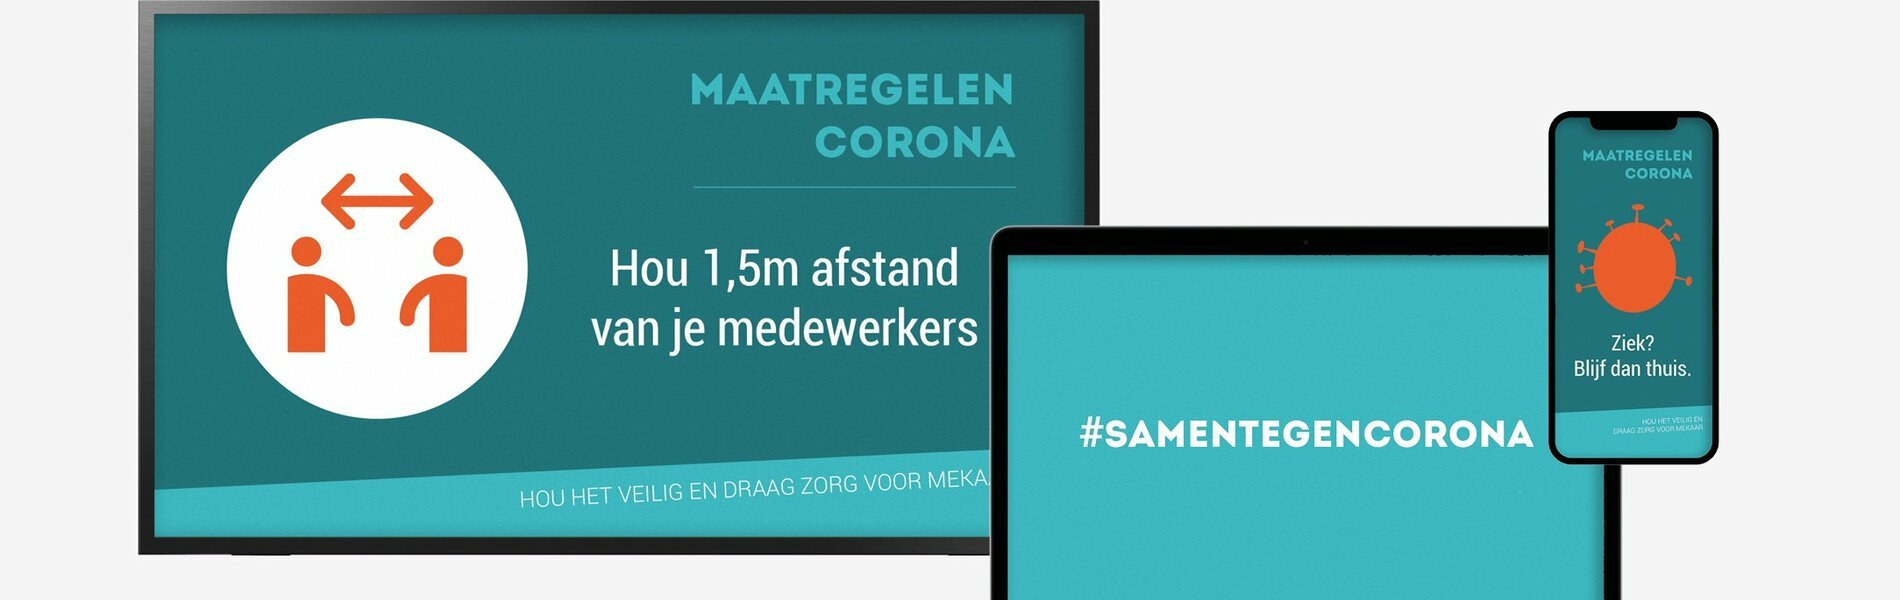 Interne communicatie corona content